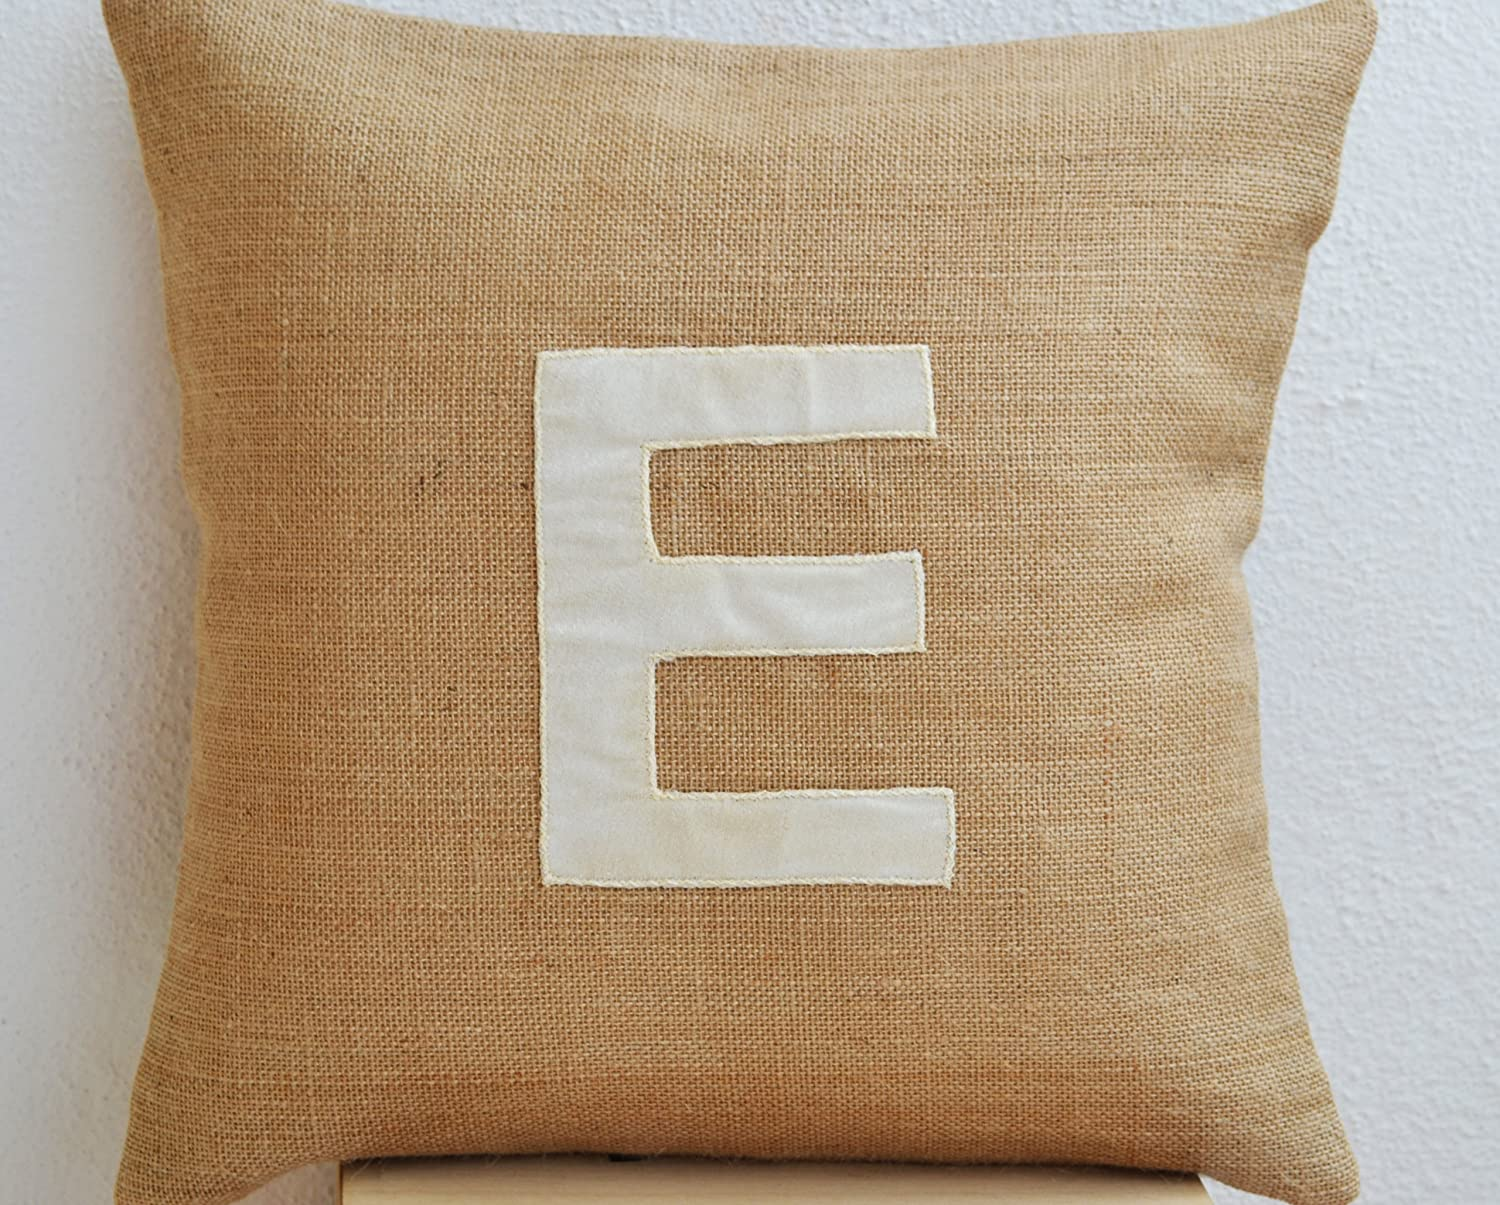 Applique Monogram Pillow Cover